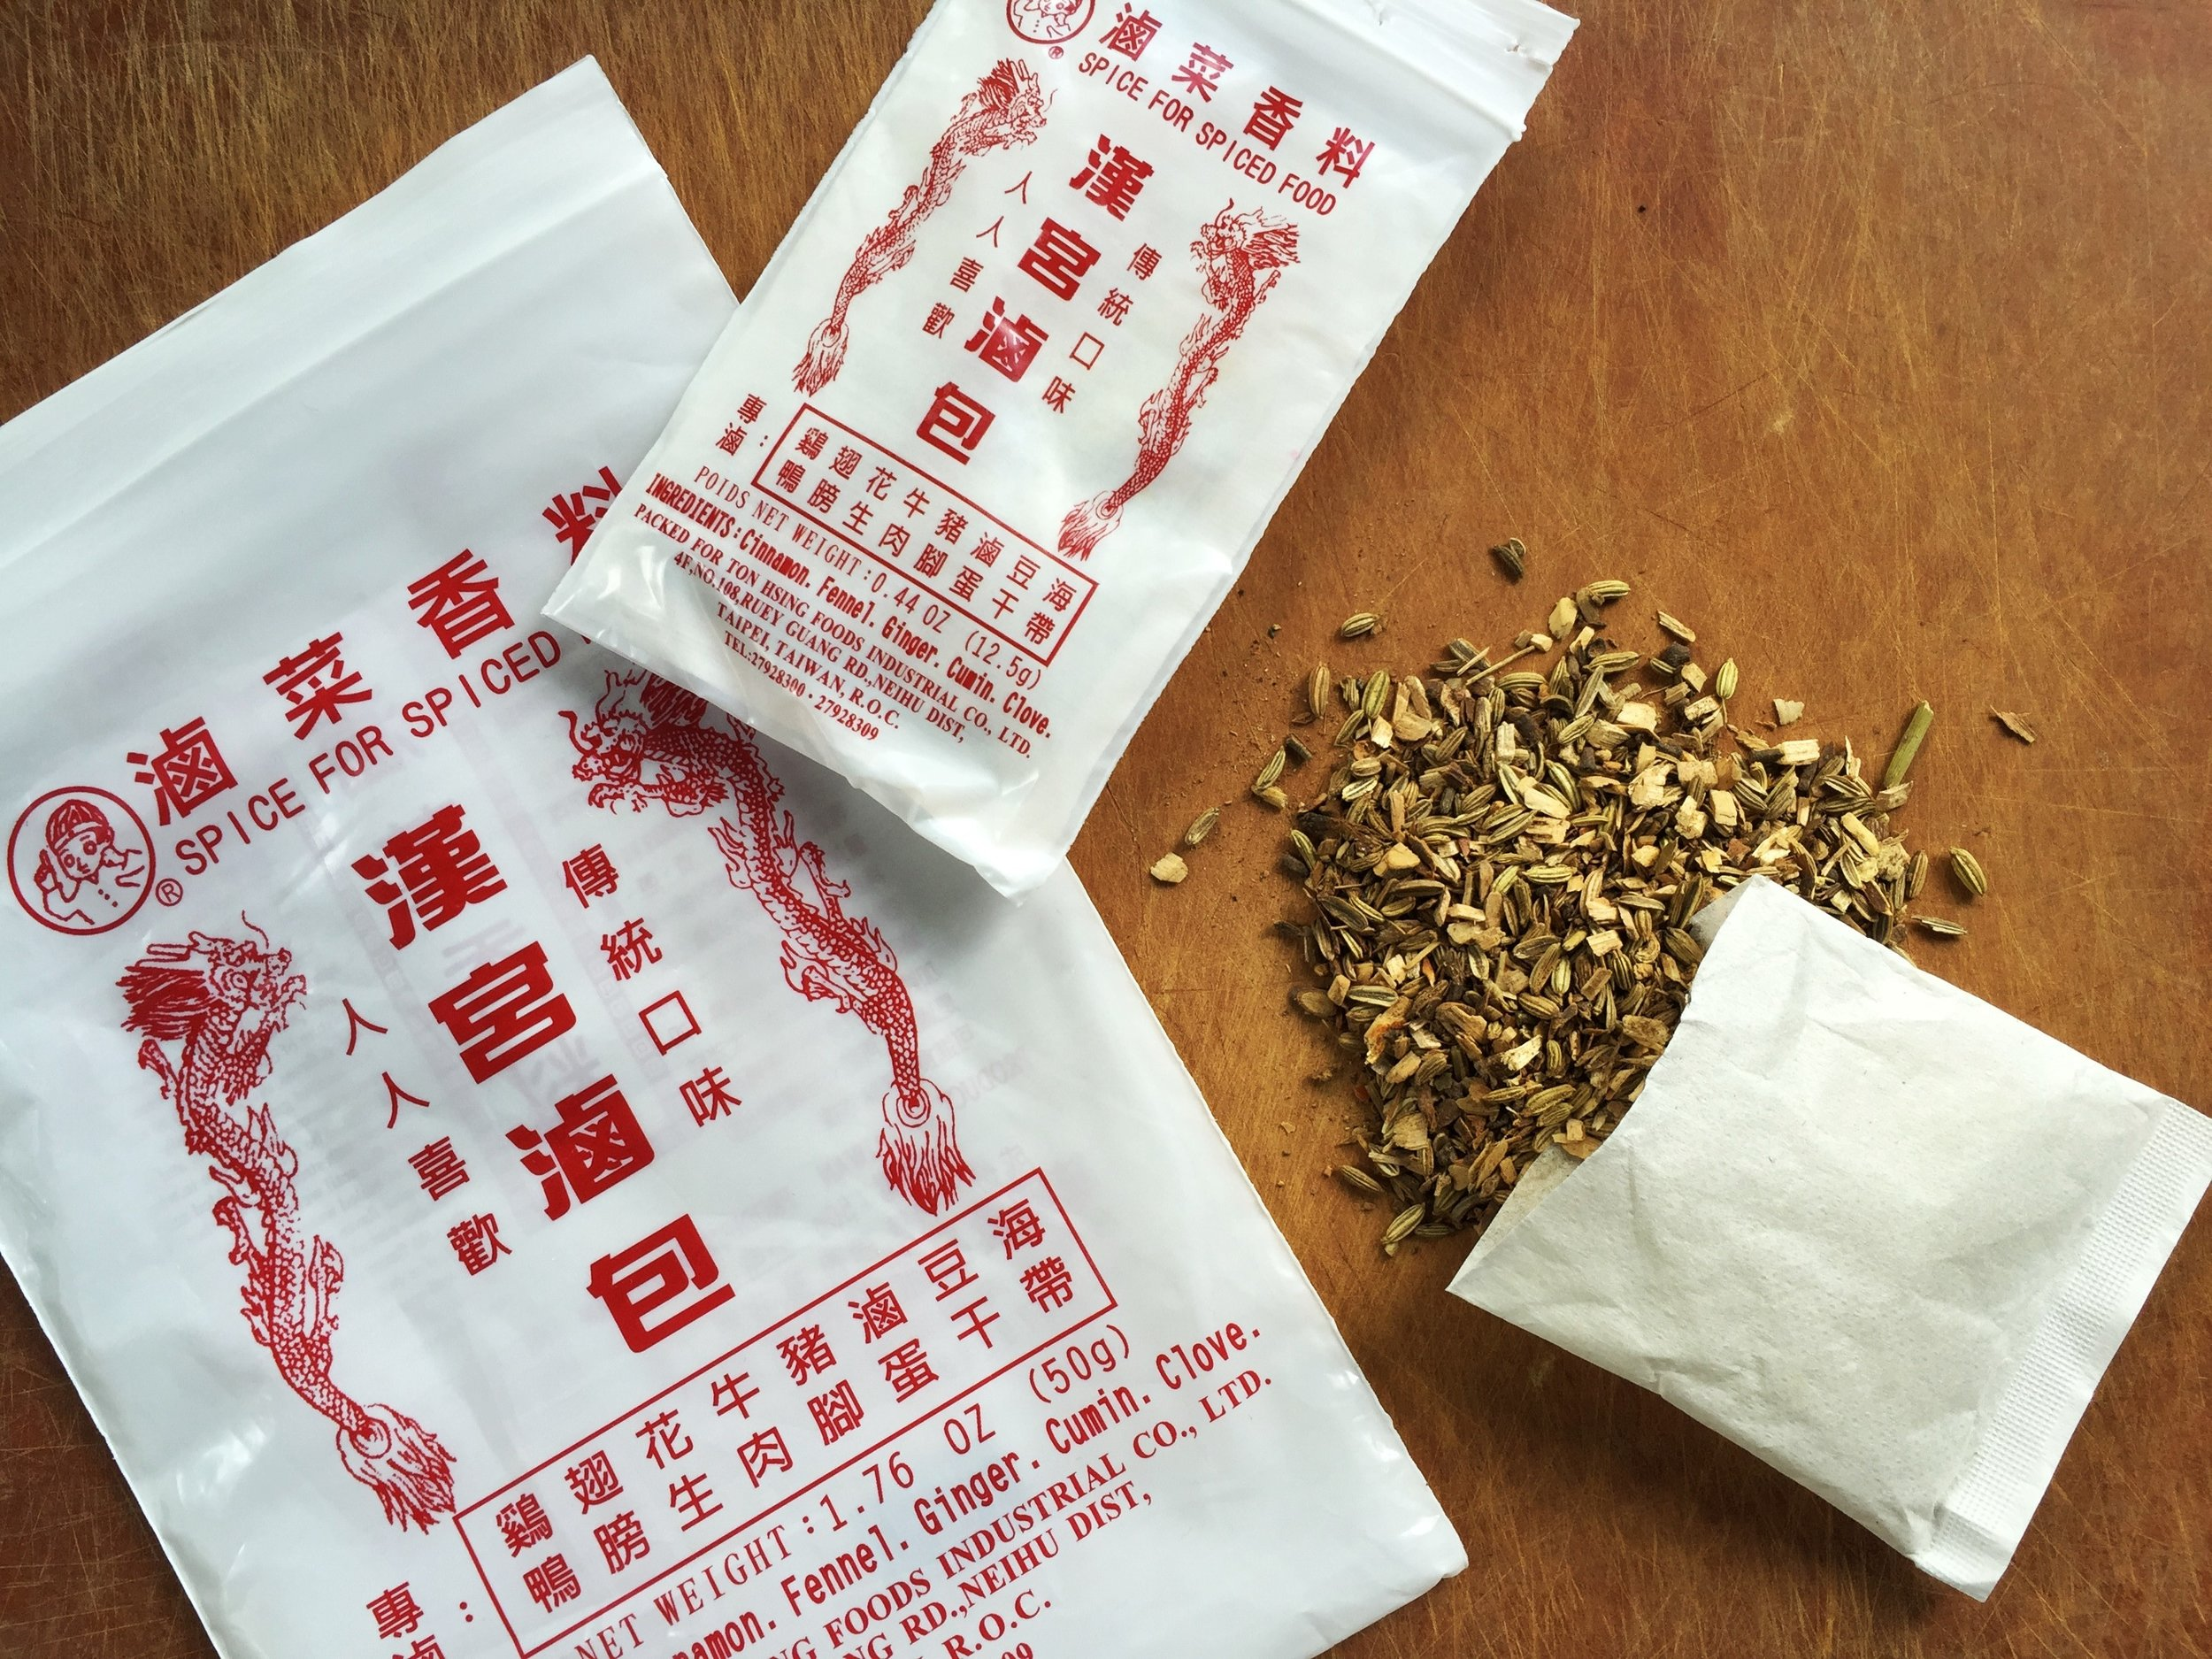 Chinese 5-spice flavor packets (with one opened up)